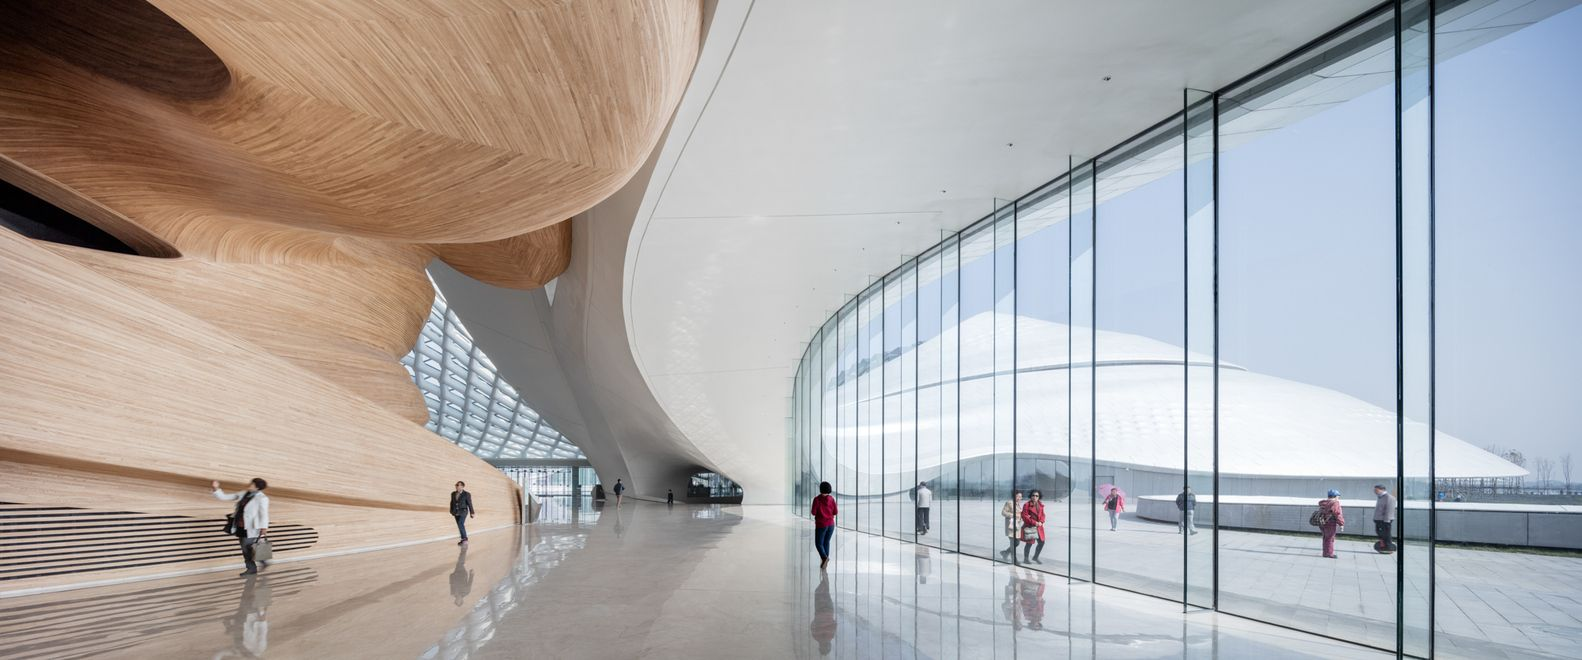 Gallery - Harbin Opera House / MAD Architects - 10